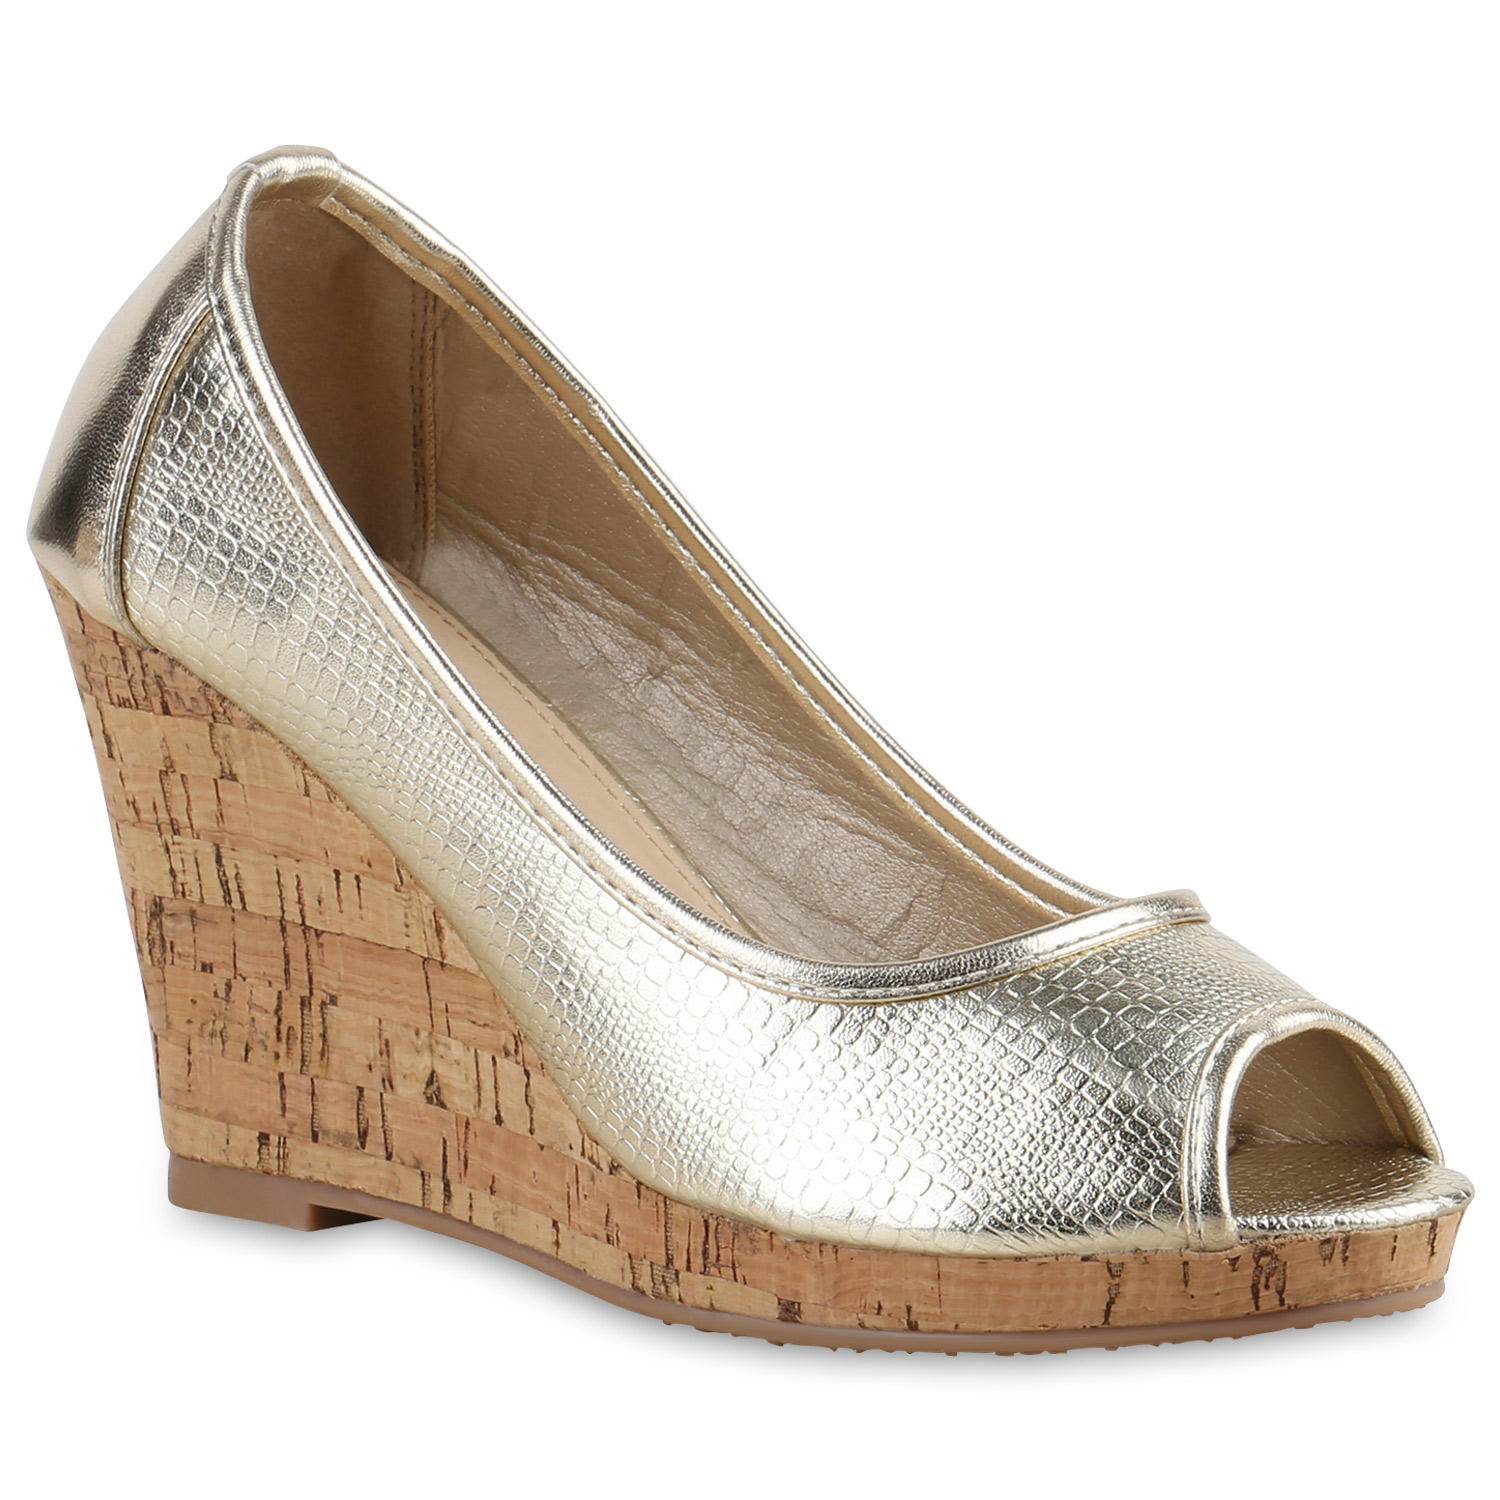 Damen Pumps Keilpumps - Gold